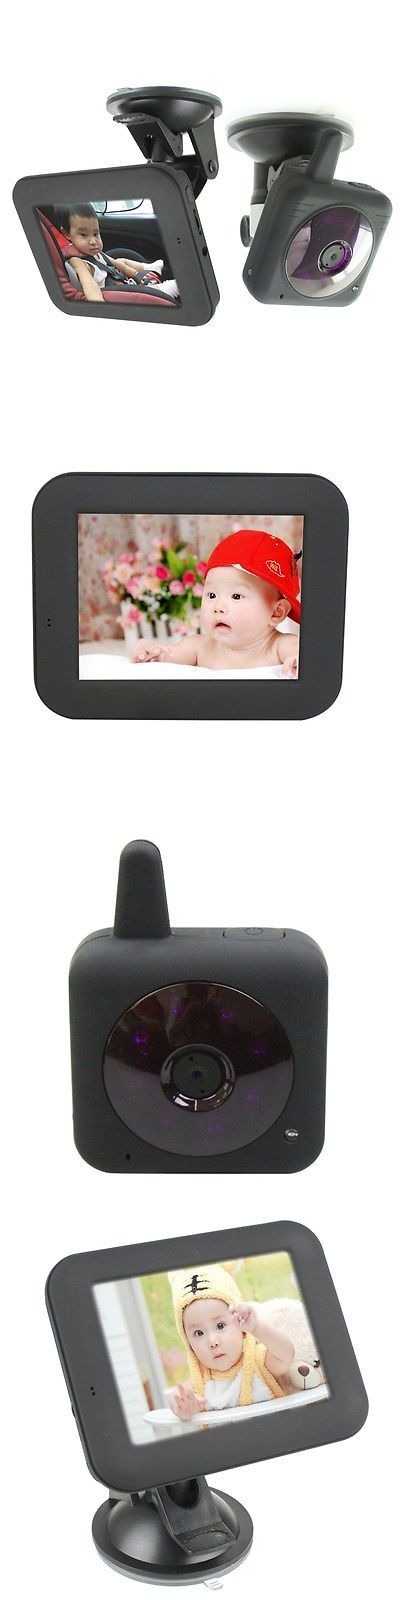 Other Car Electronics Accs: 2.4G Wireless Camera 3.5-Inch Video Audio Car Baby Monitor Ir Night Vision - Usa BUY IT NOW ONLY: $79.37